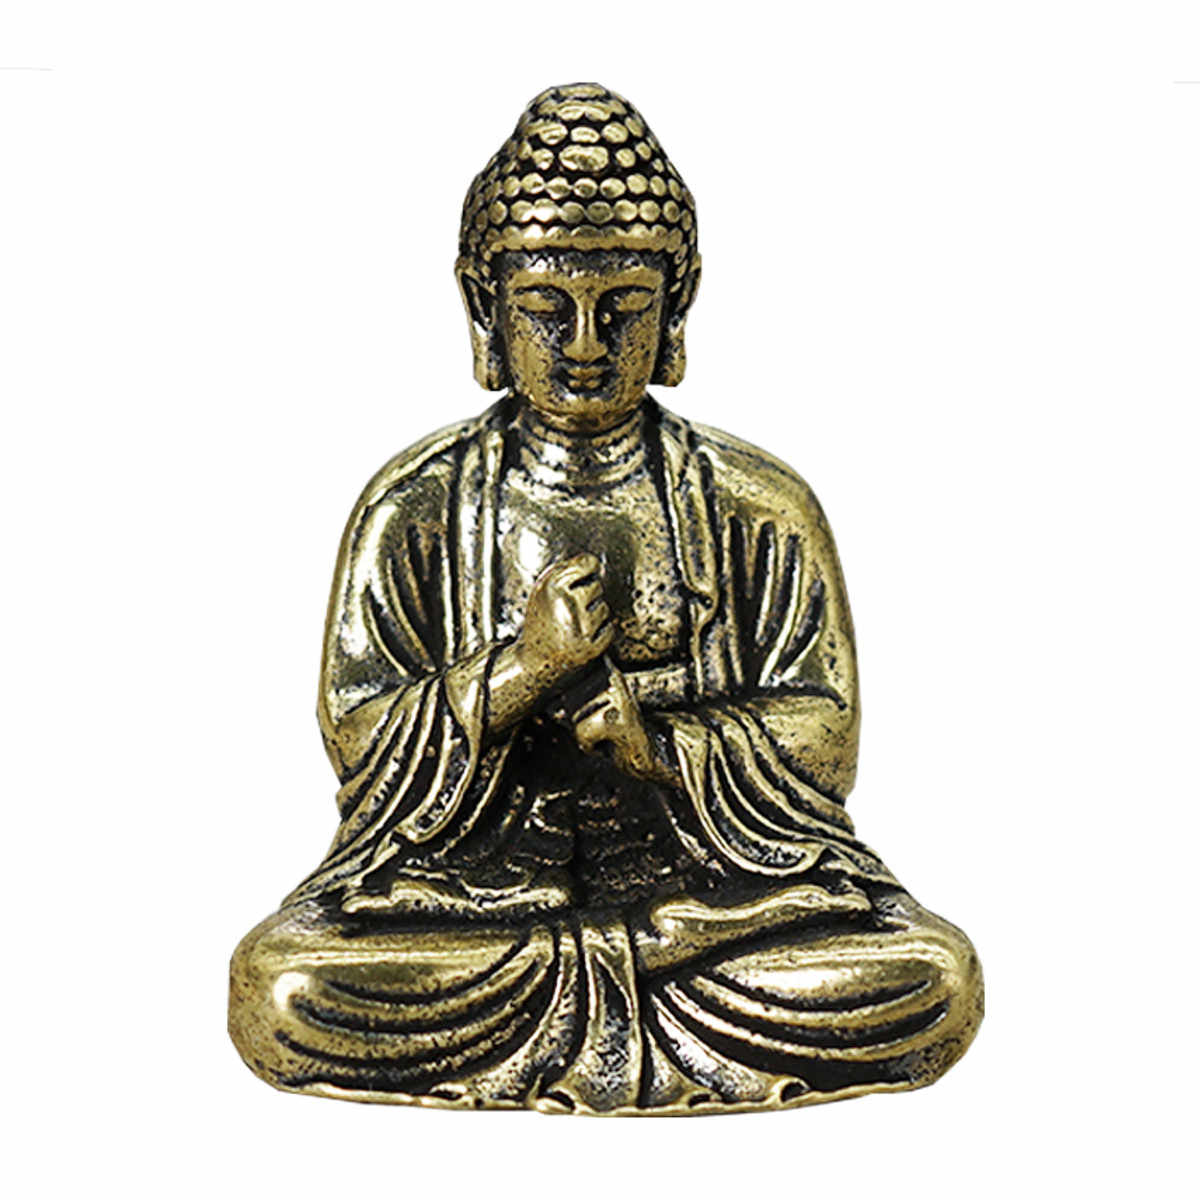 Chinese Buddhism Pure Copper Brass Bronze Sakyamuni Buddha Small Statue Figurine Miniature Home Decoration Craft 3x2.2cm New